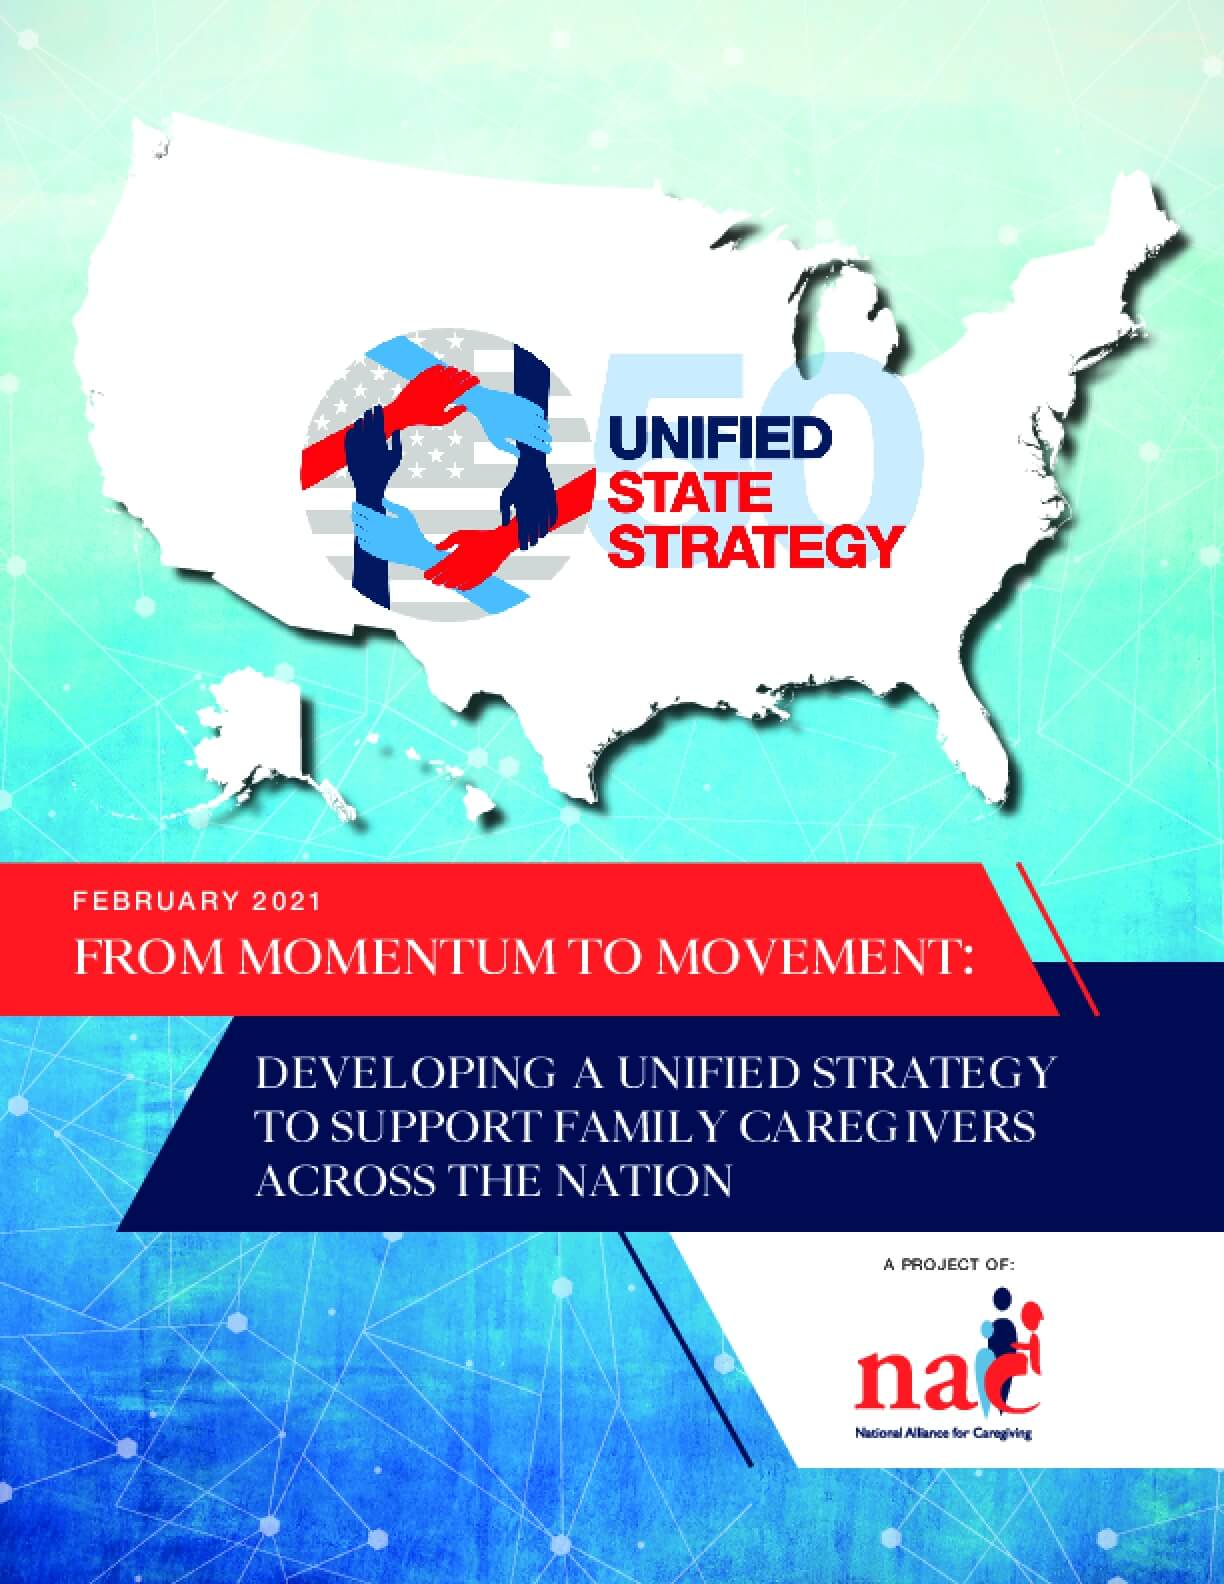 From Momentum to Movement: Developing a Unified Strategy to Support Family Caregivers Across the Nation